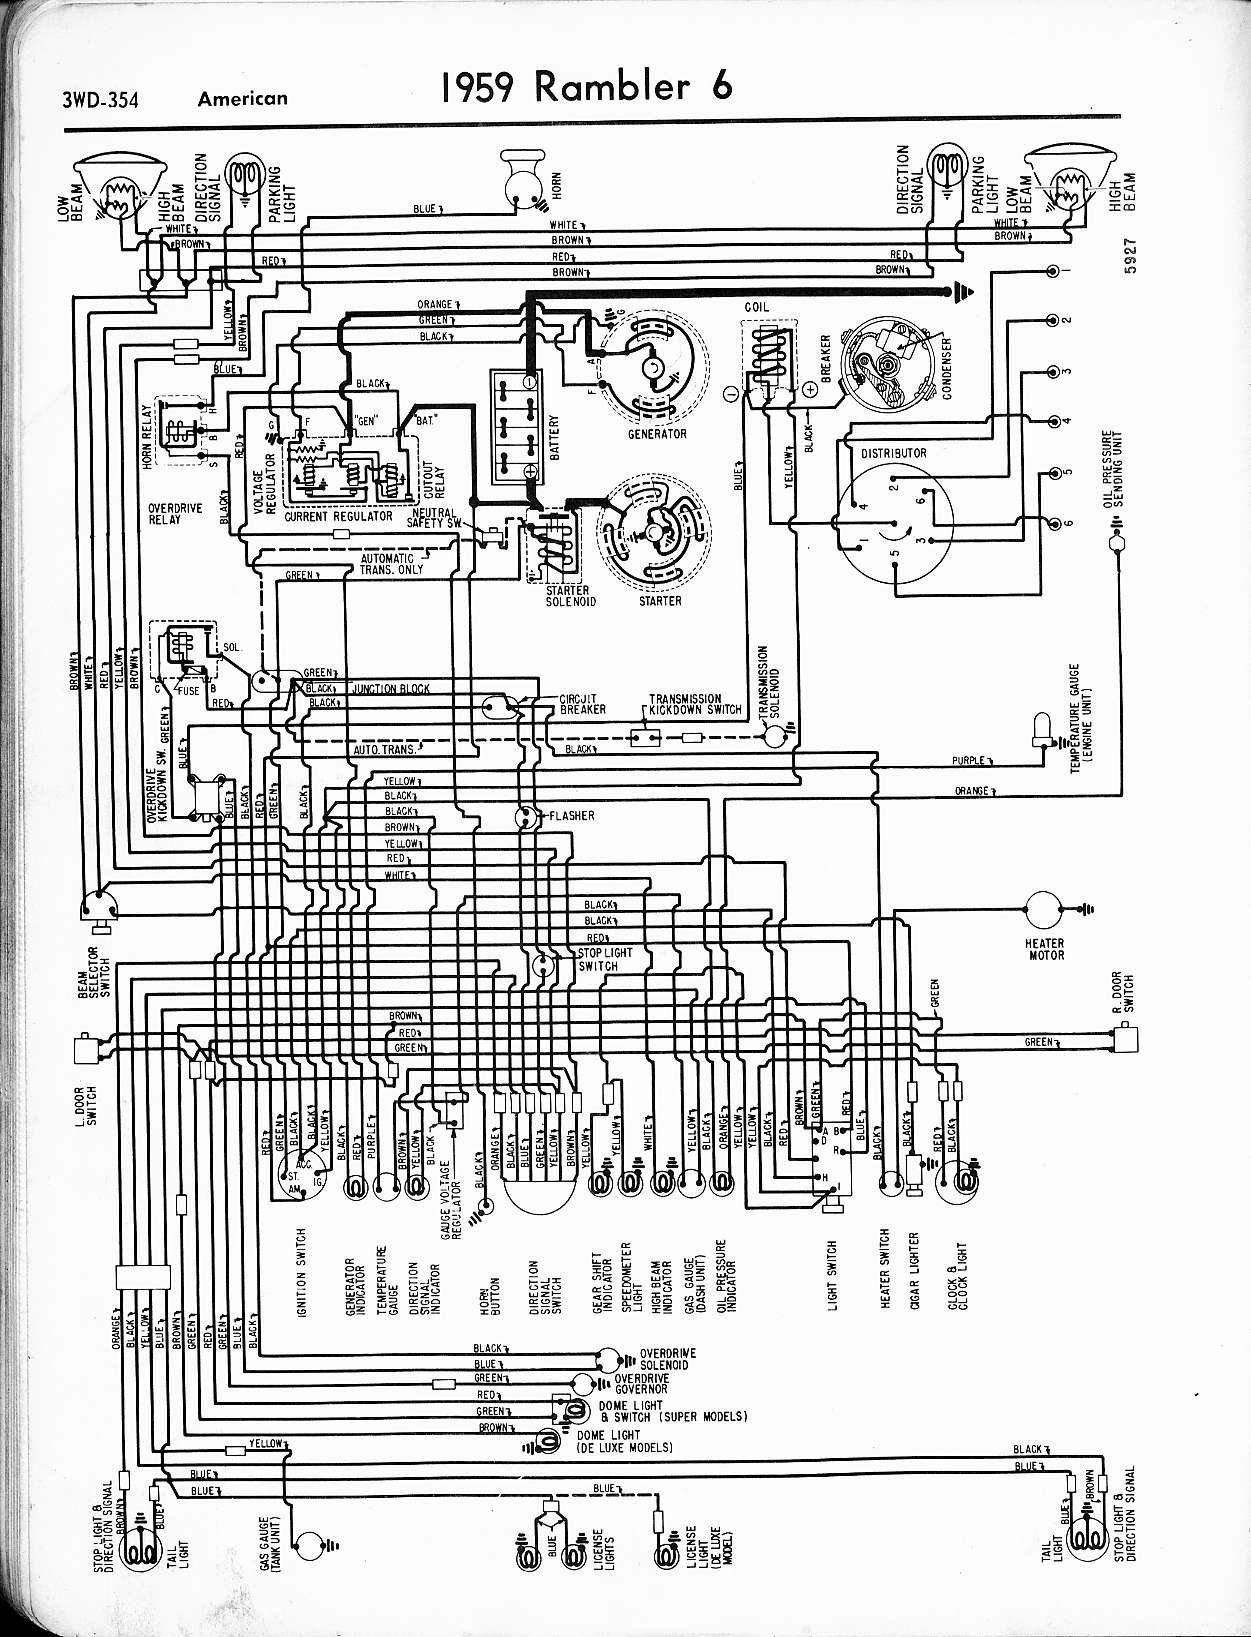 MWire5765 354 rambler wiring diagrams the old car manual project 1964 rambler fuse box diagram at suagrazia.org